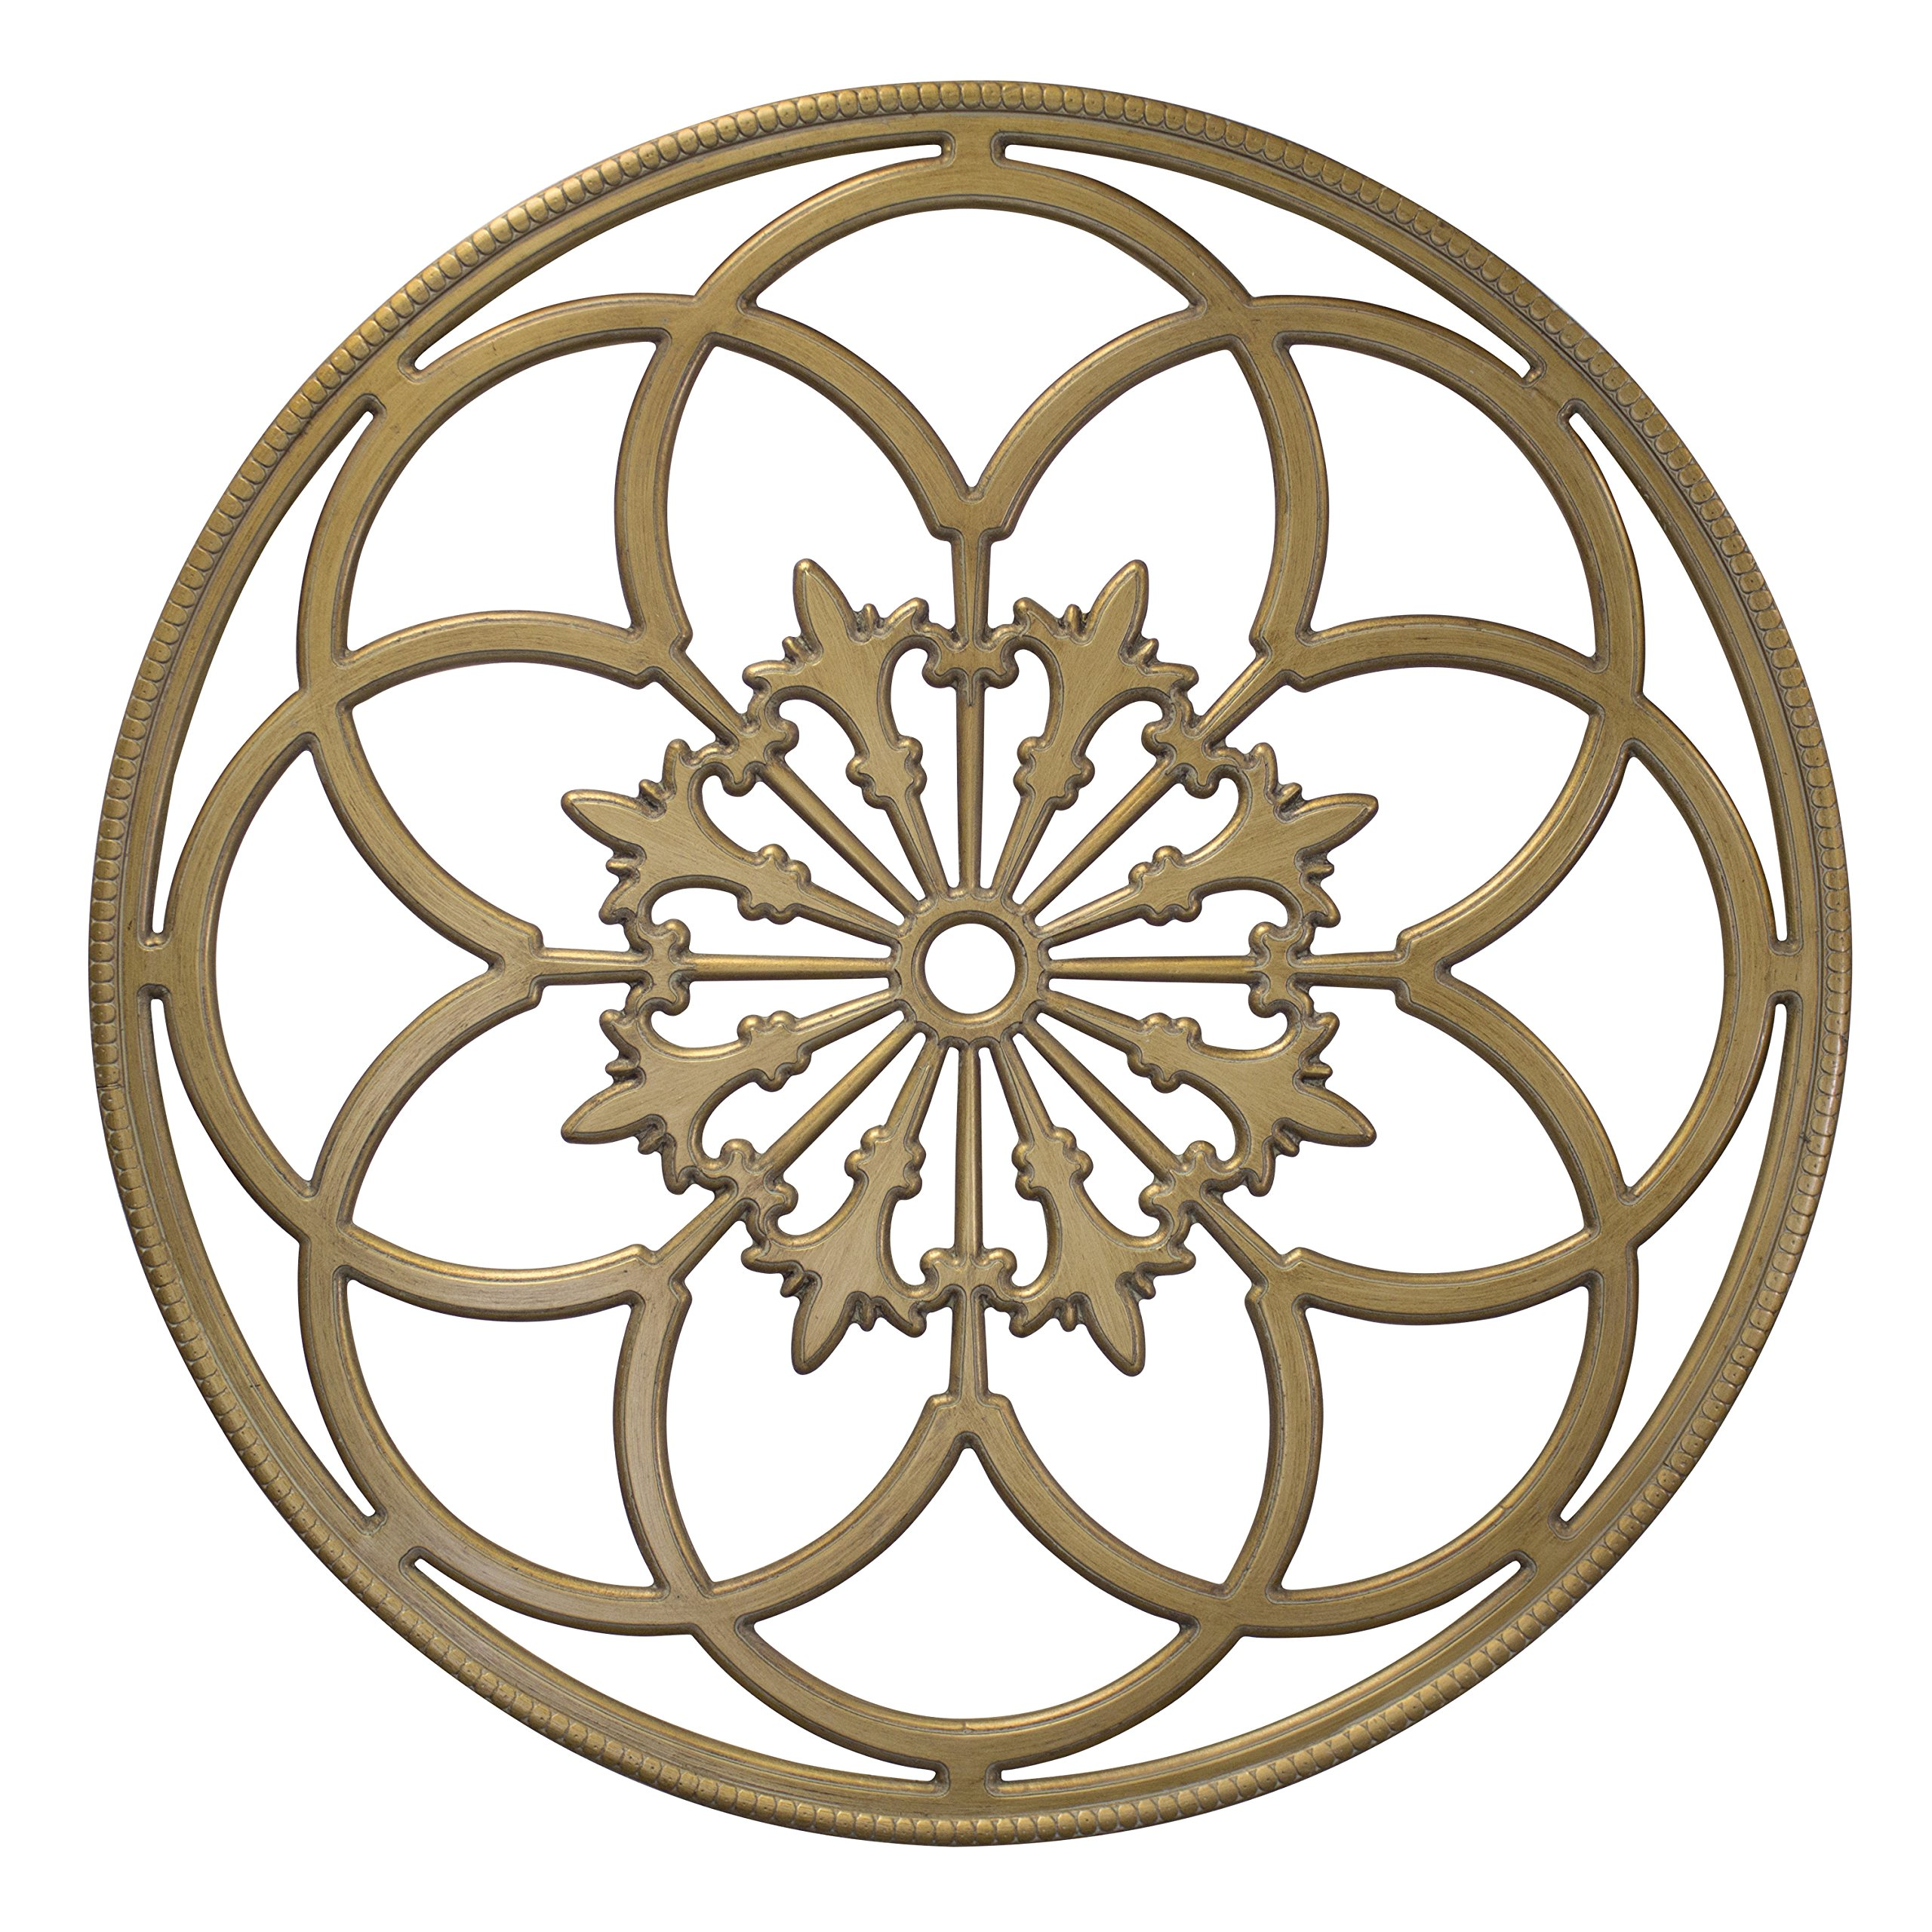 Kate and Laurel Ondelette Round Medallion Wood Wall Art Plaque, 32 inch Diameter, Gold